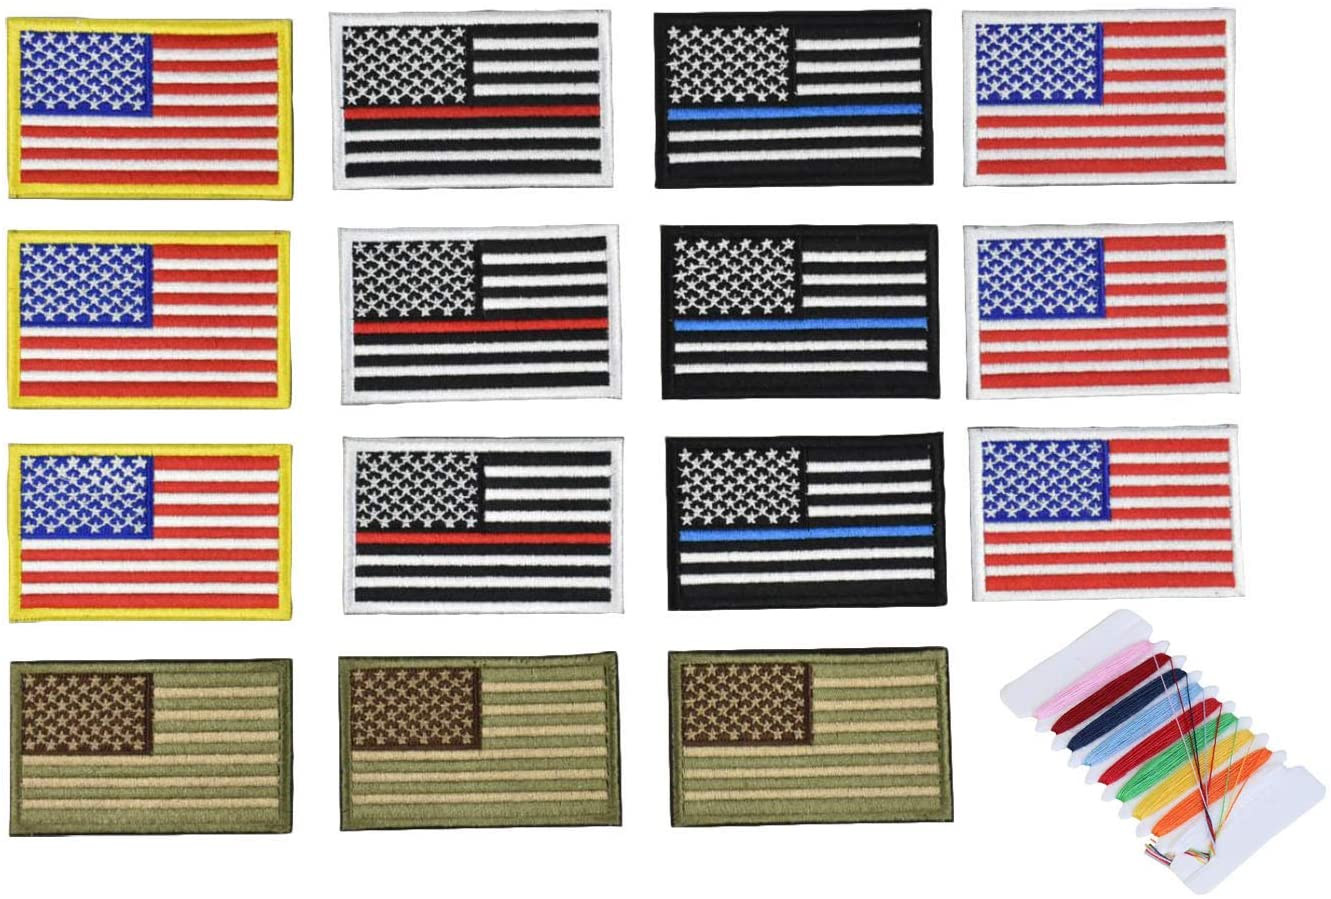 American Flag Embroidered Patch, sew on/Ironing Method ,Gold Border USA United States of America, US Flag Patch, for Caps,Bags,Backpacks,Tactical Vest,Military Uniforms